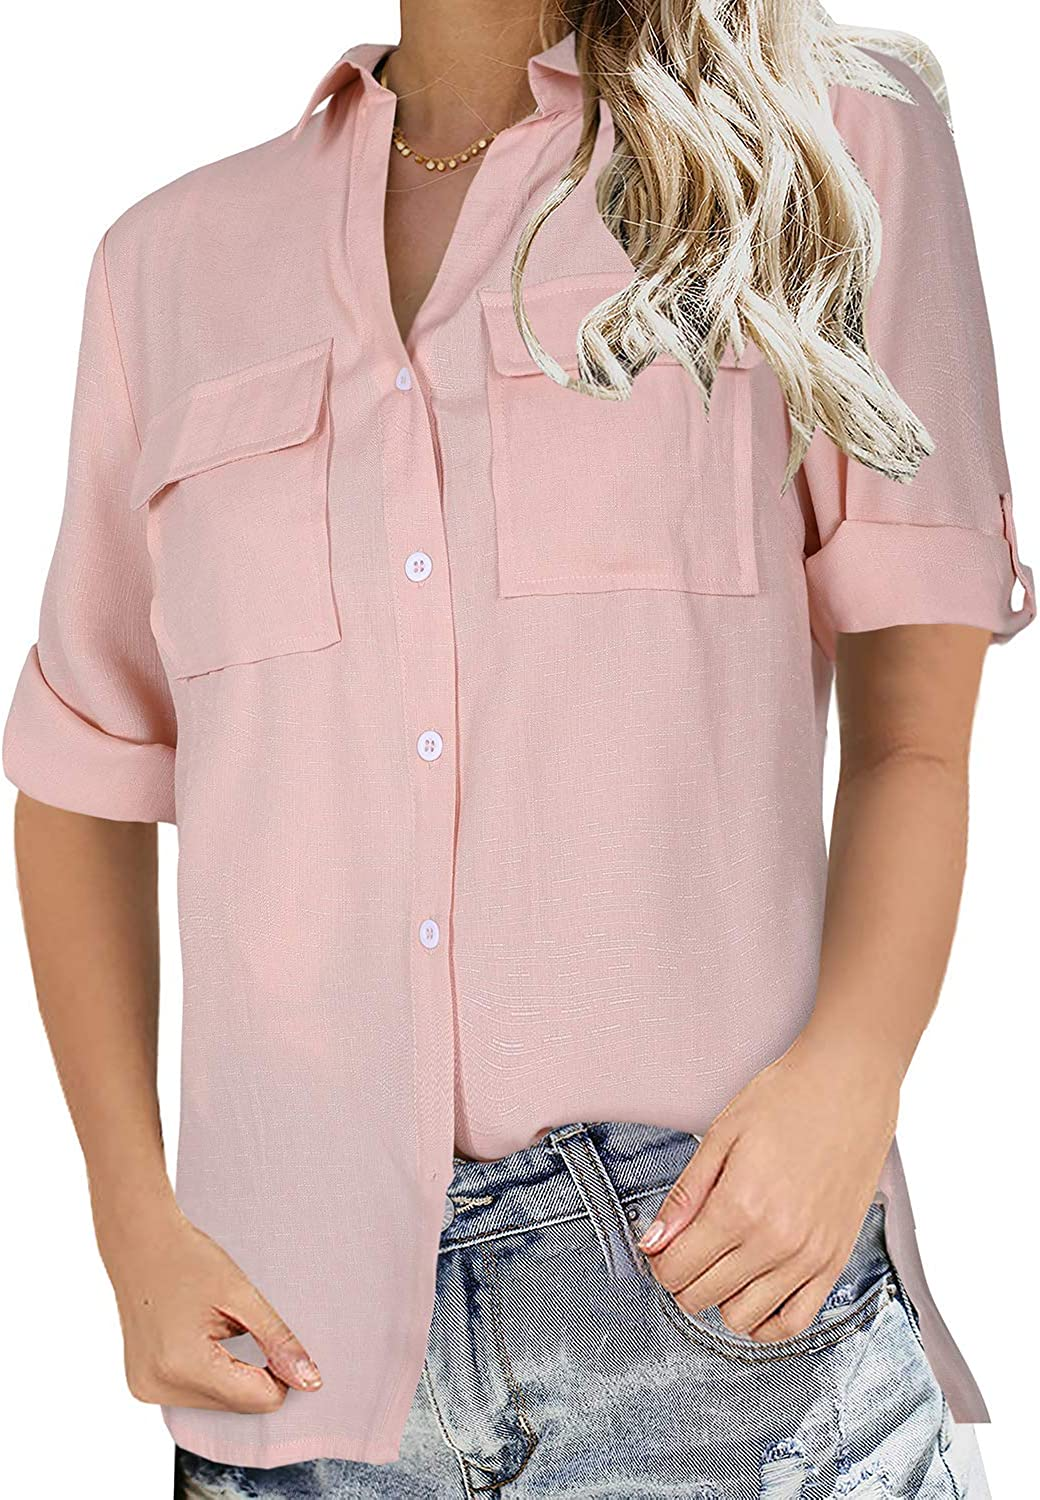 Niitawm Womens Button Down Blouse Shirts Short Sleeve V Neck Casual Loose Collared Tops with Pockets